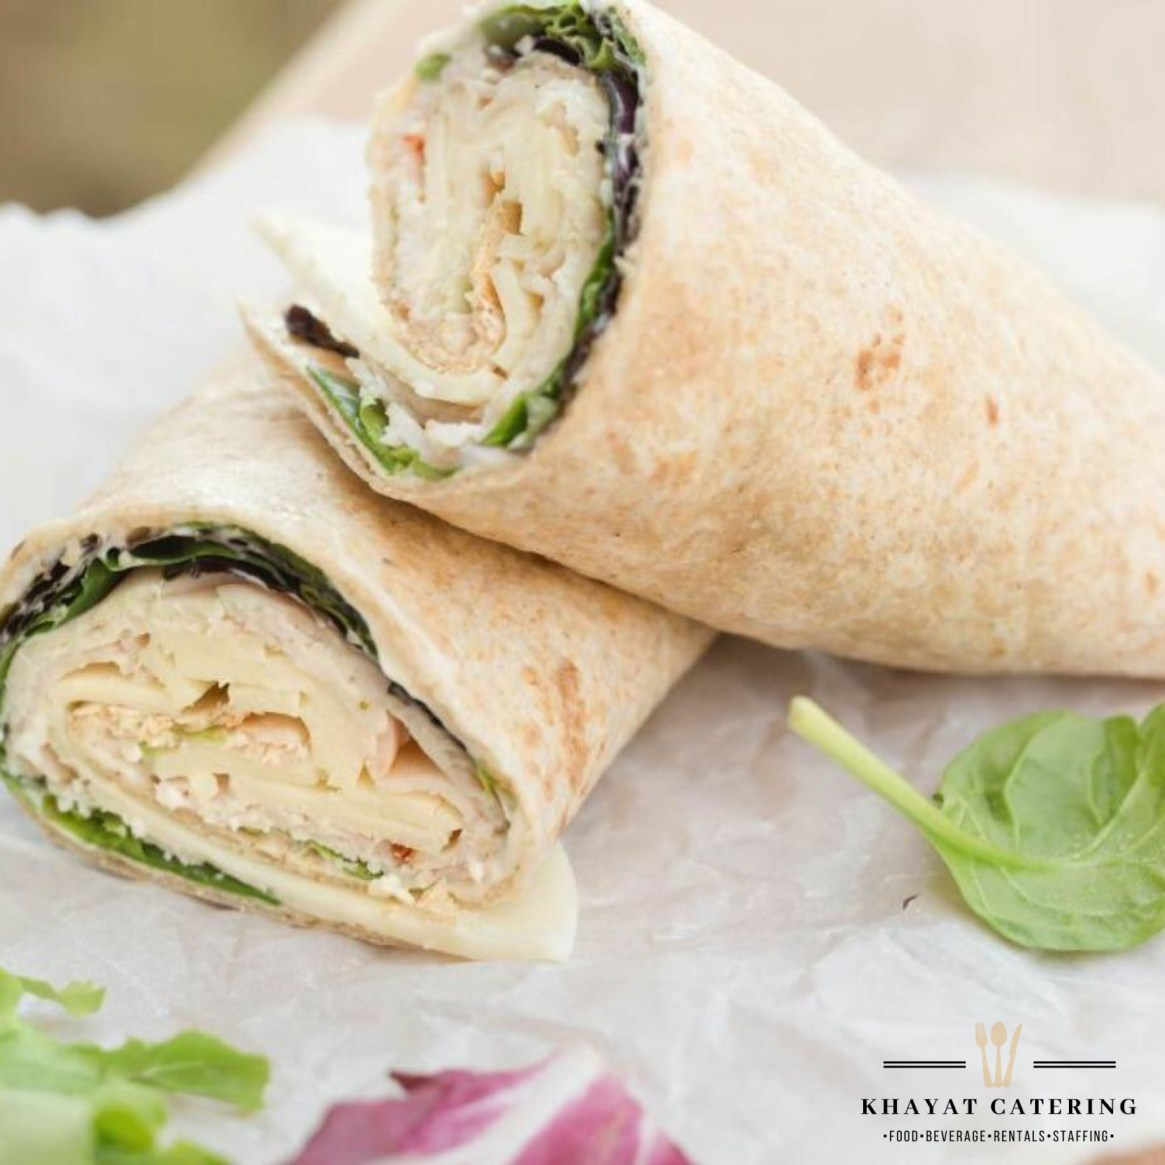 Khayat Catering turkey Rueben wrap